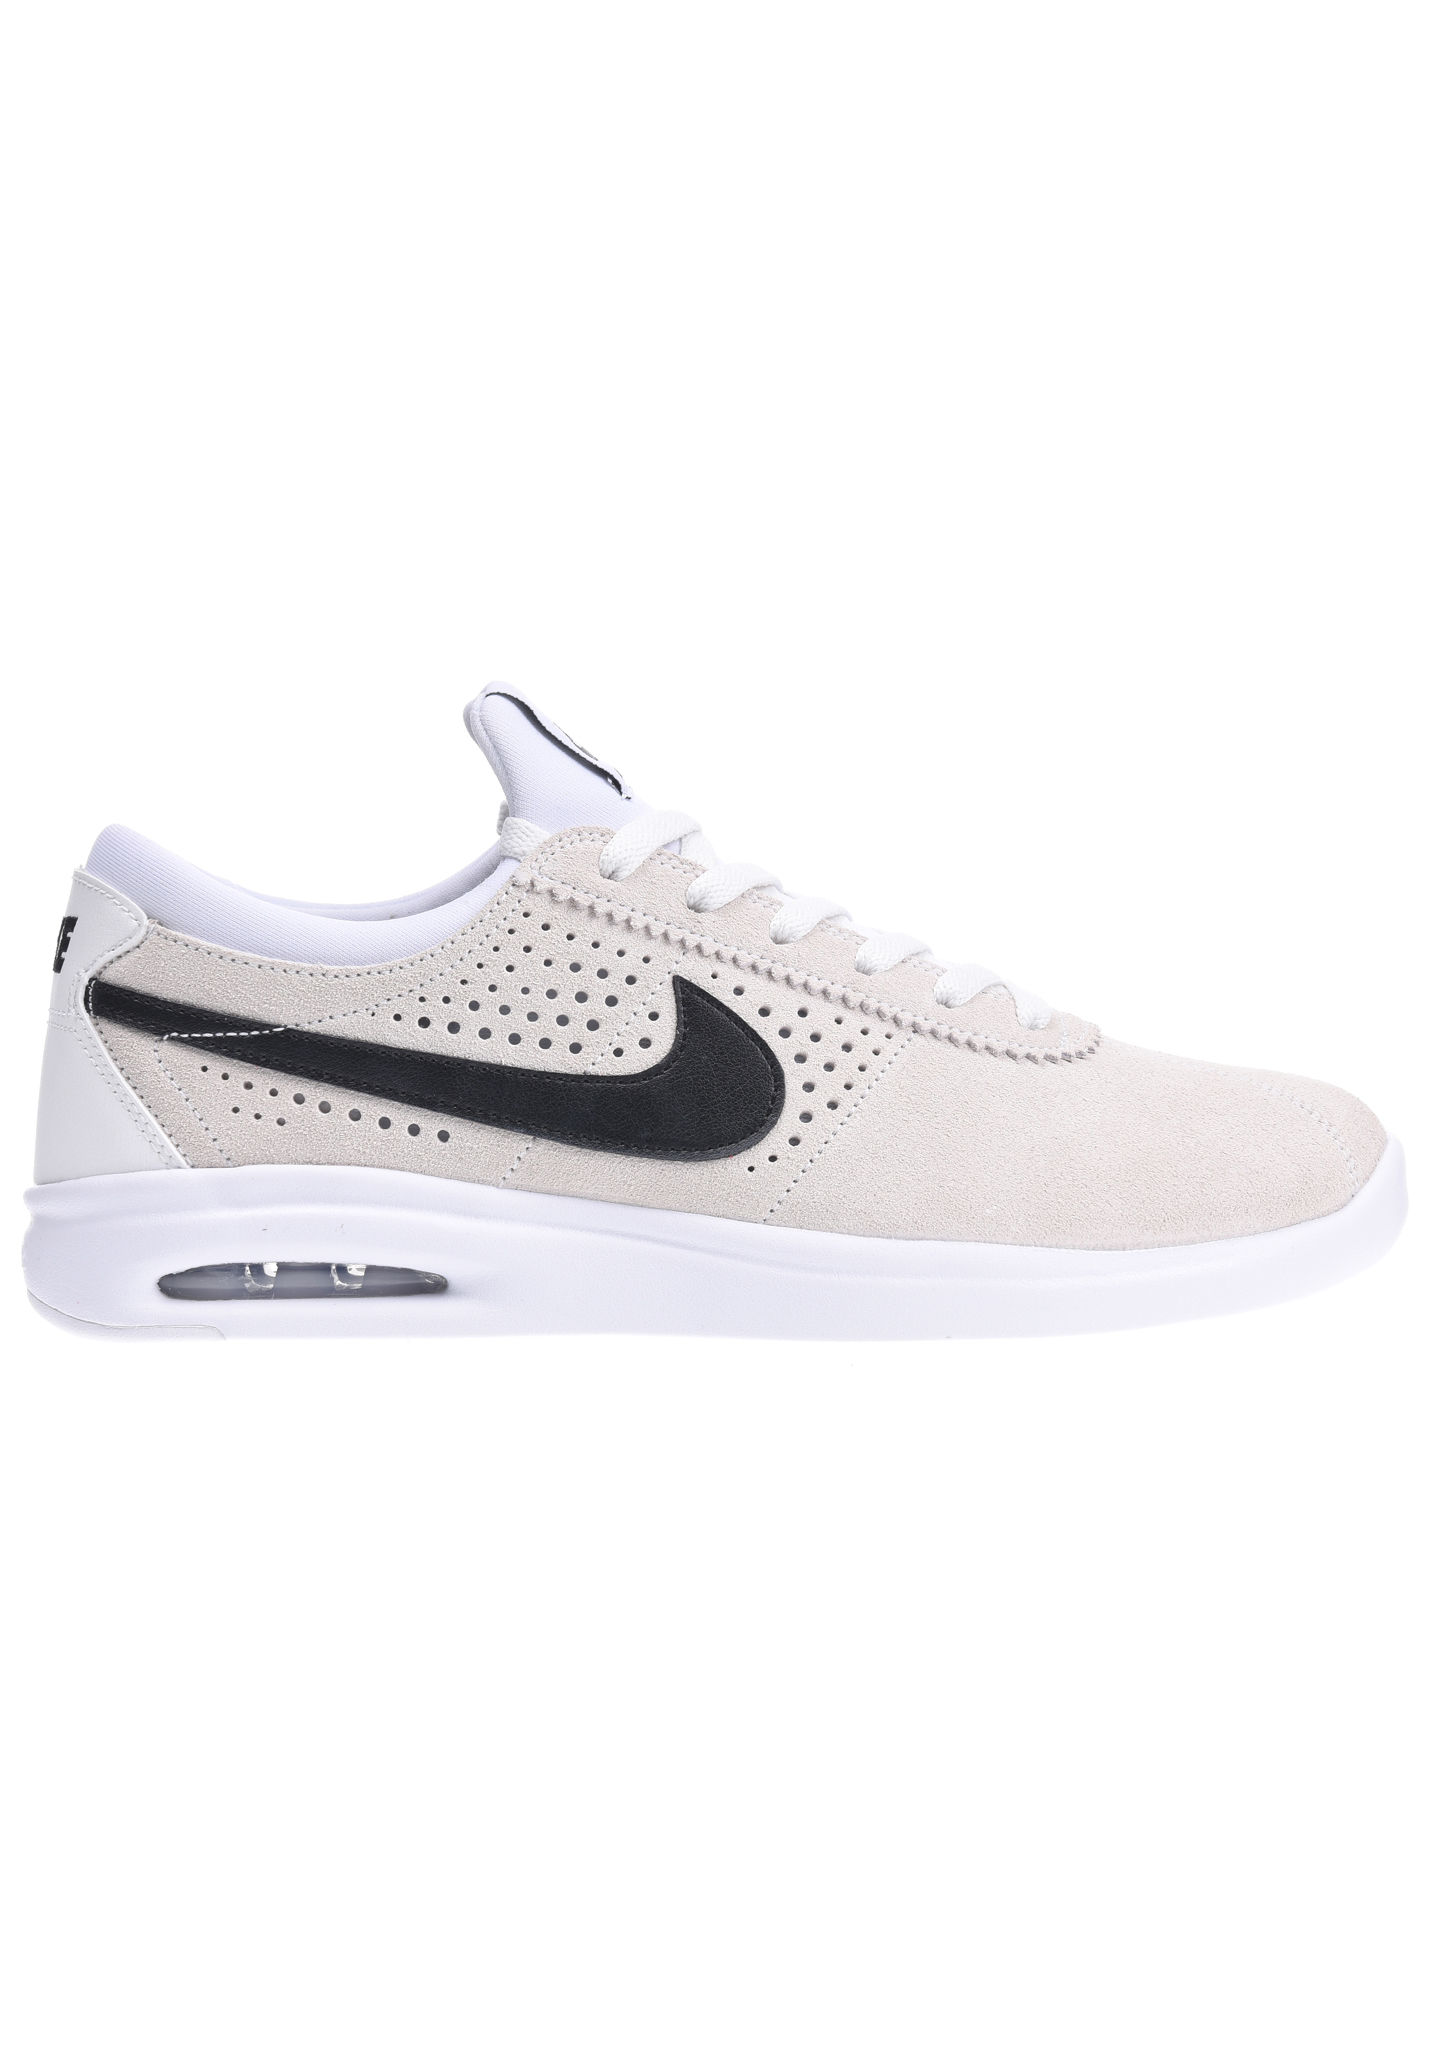 premium selection 7bc9d 693a1 NIKE SB Air Max Bruin Vapor - Sneakers for Men - Beige - Planet Sports